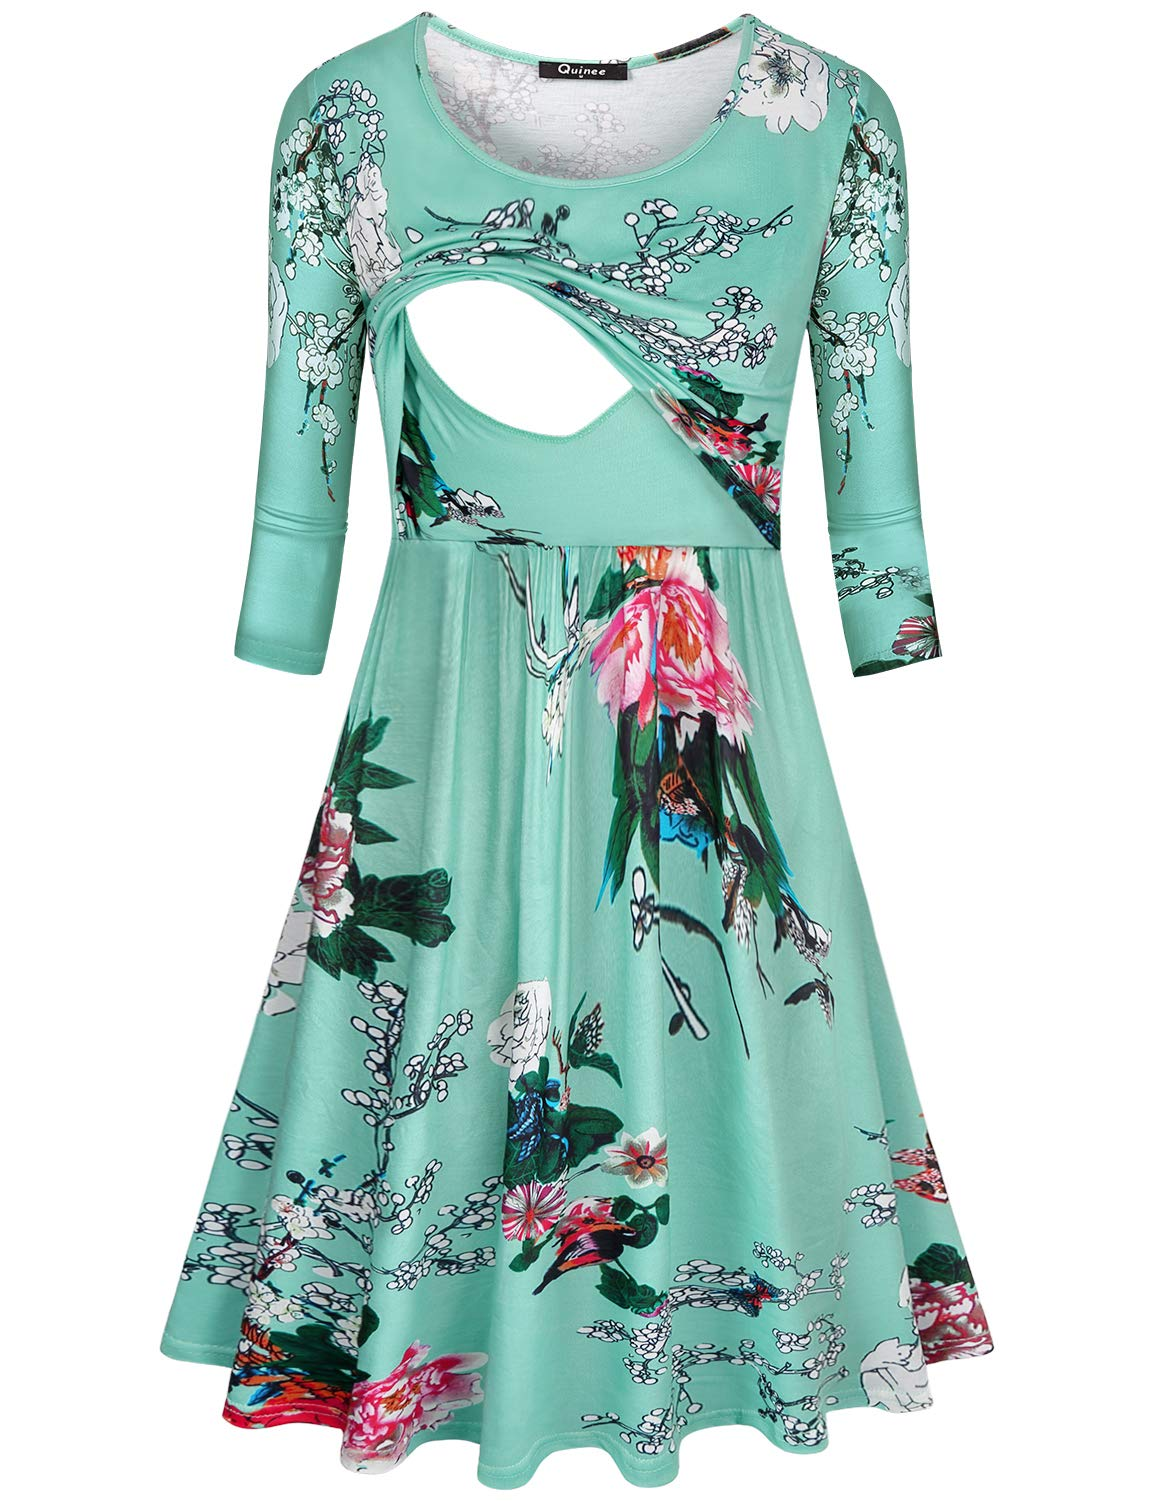 Quinee Nursing Clothes, Women 2XL Plus Size Midi Breastfeeding Dress Scoop Neck Floral Flared Lift Up Double Layered Pregnancy Dress Cozy Maternity Hospital Night Gown Pajamas Leaf Green XXL